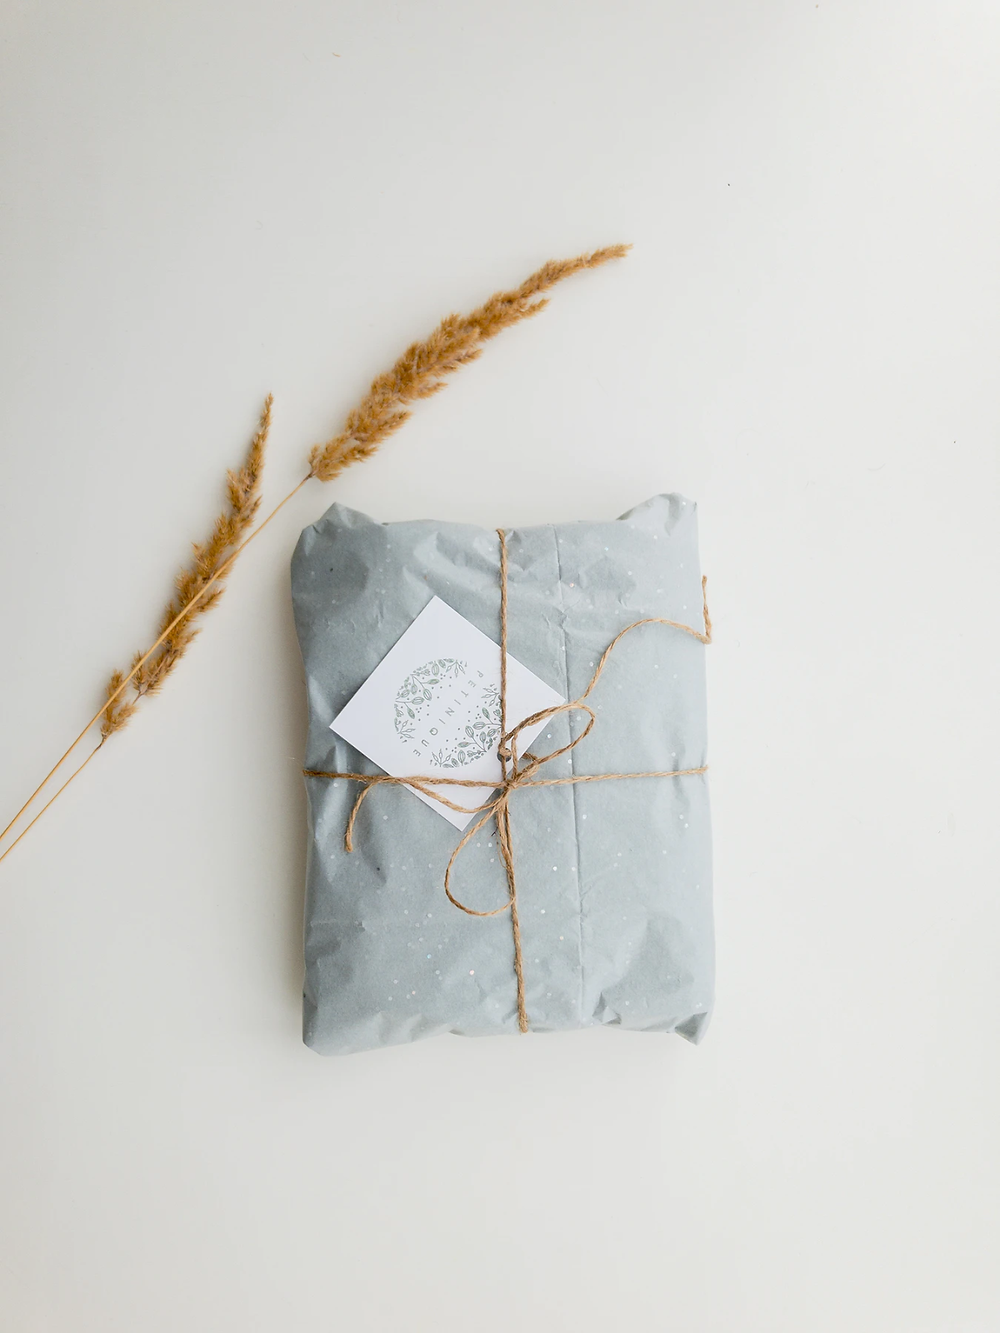 light blue parcel wrapped in twine with sprigs of wheat in the corner